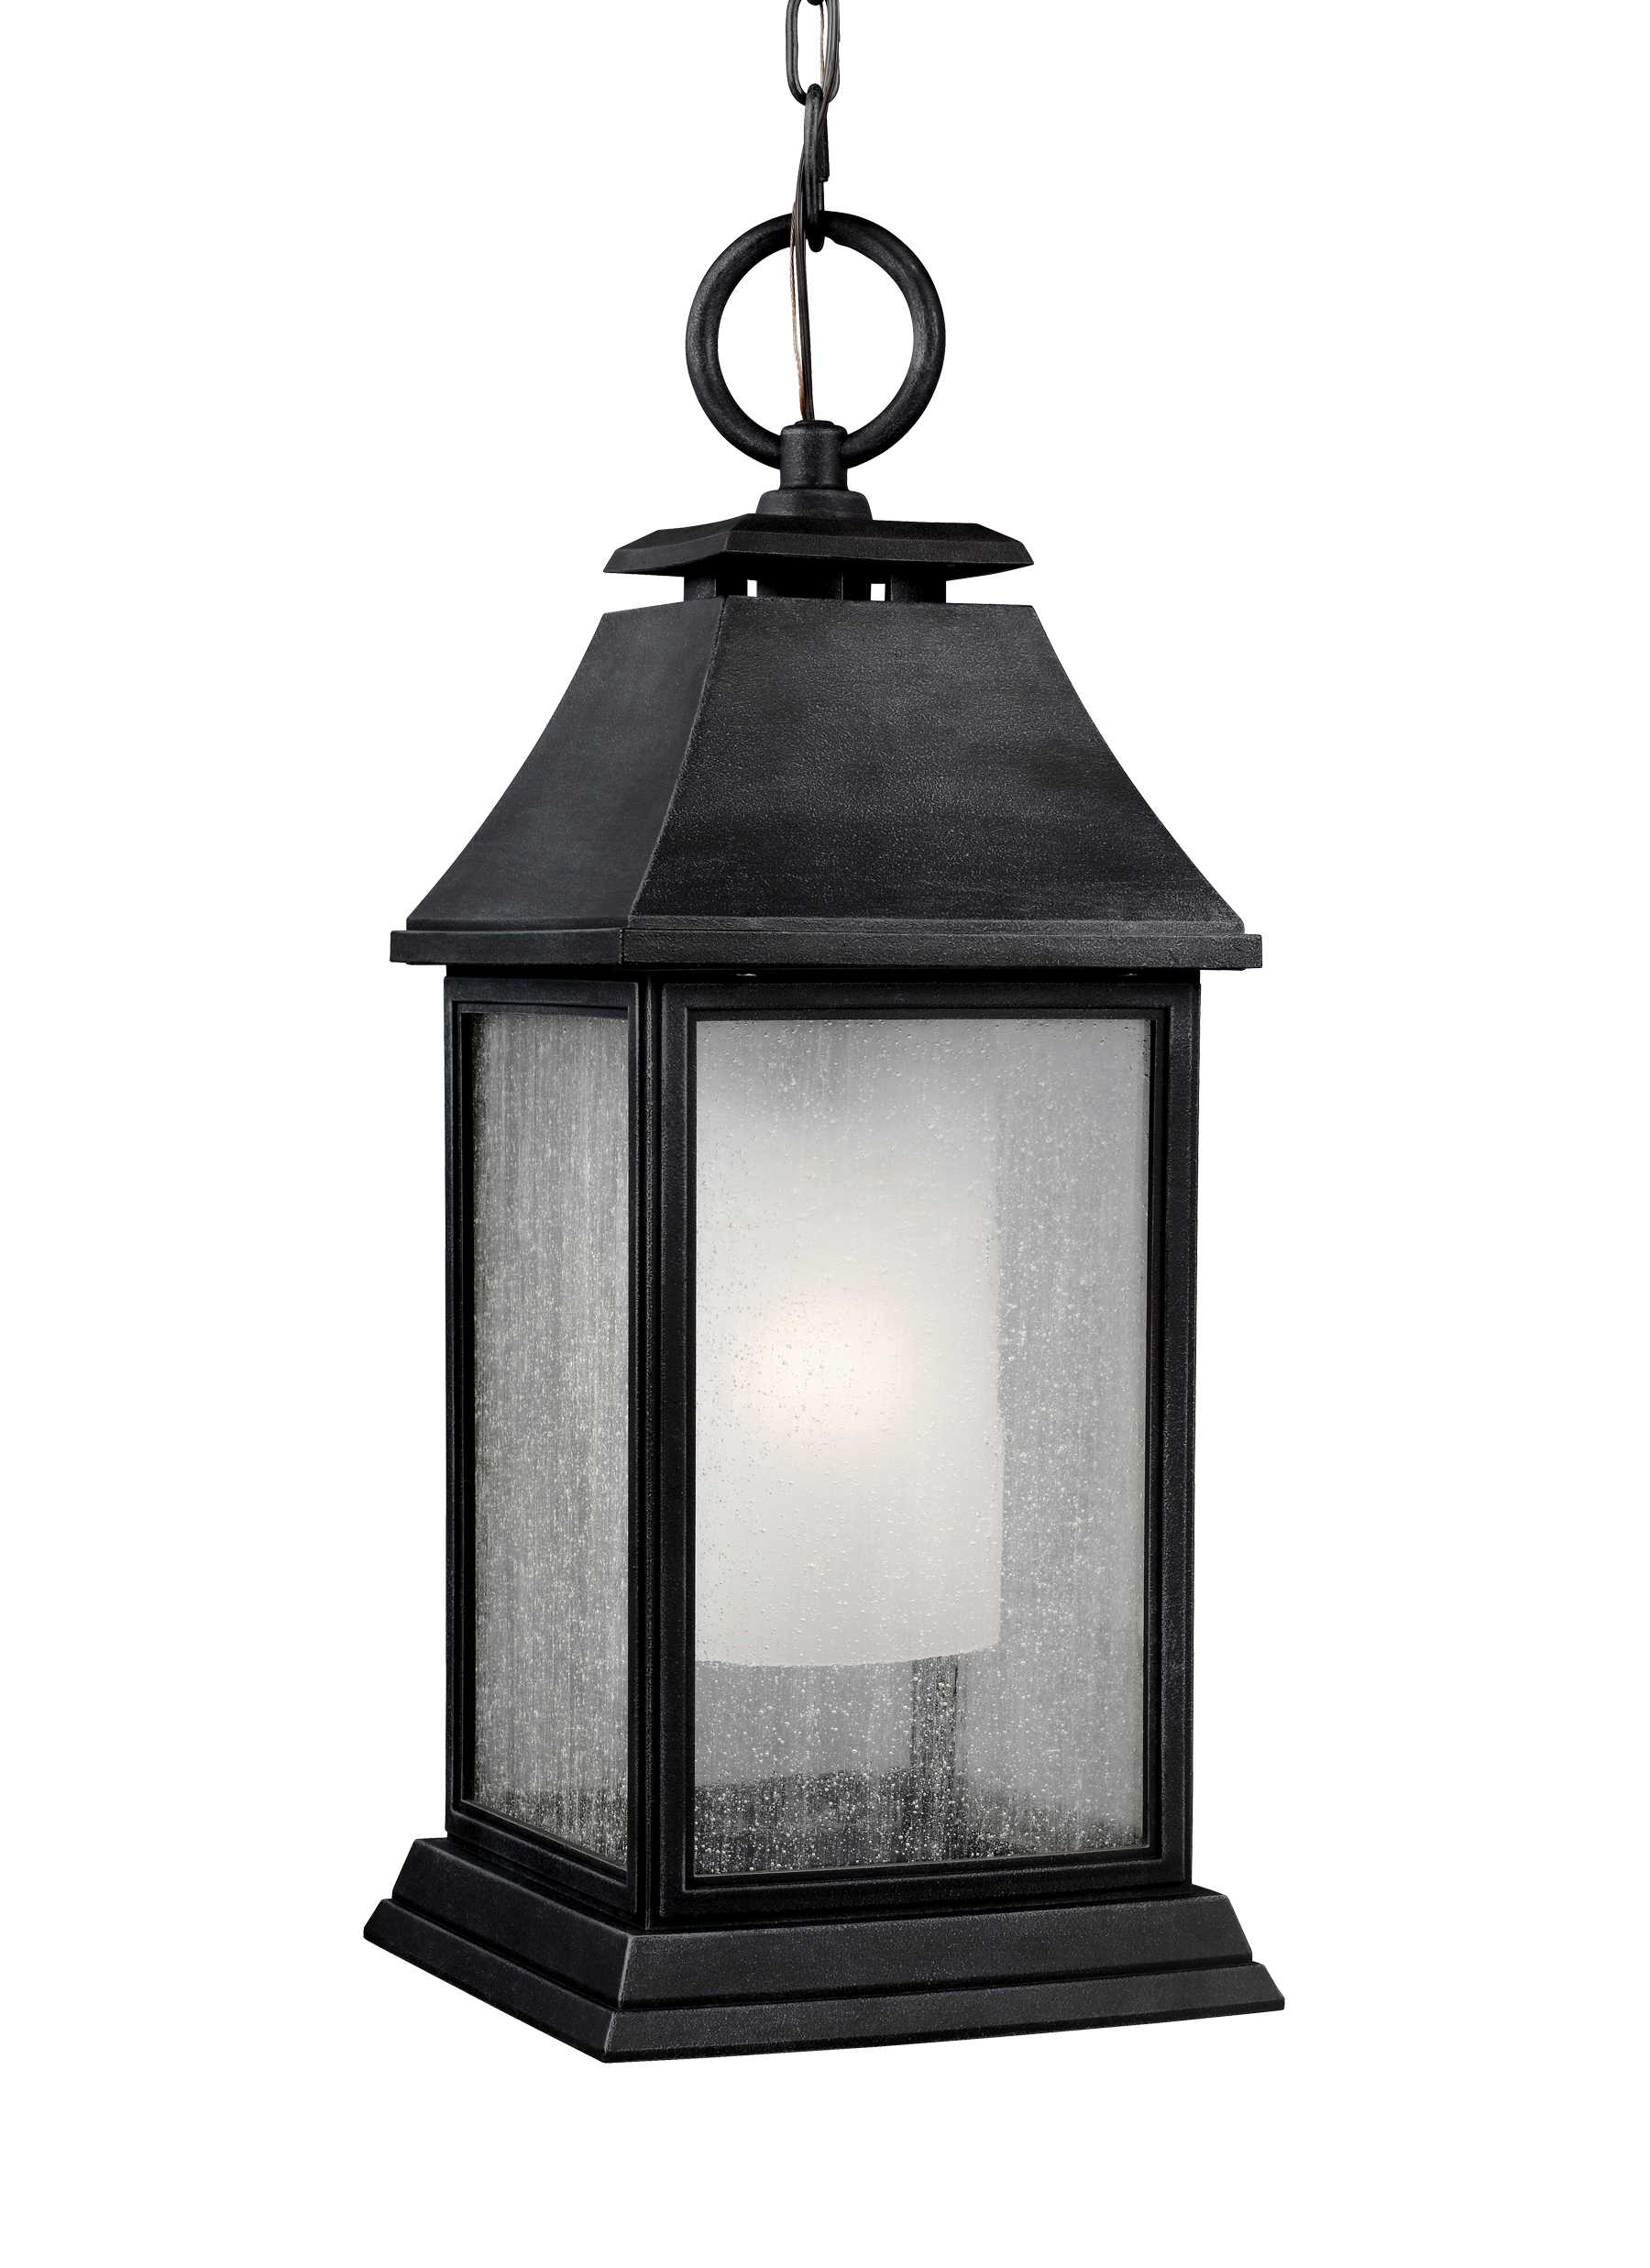 large outdoor pendant lighting.  pendant loading zoom throughout large outdoor pendant lighting